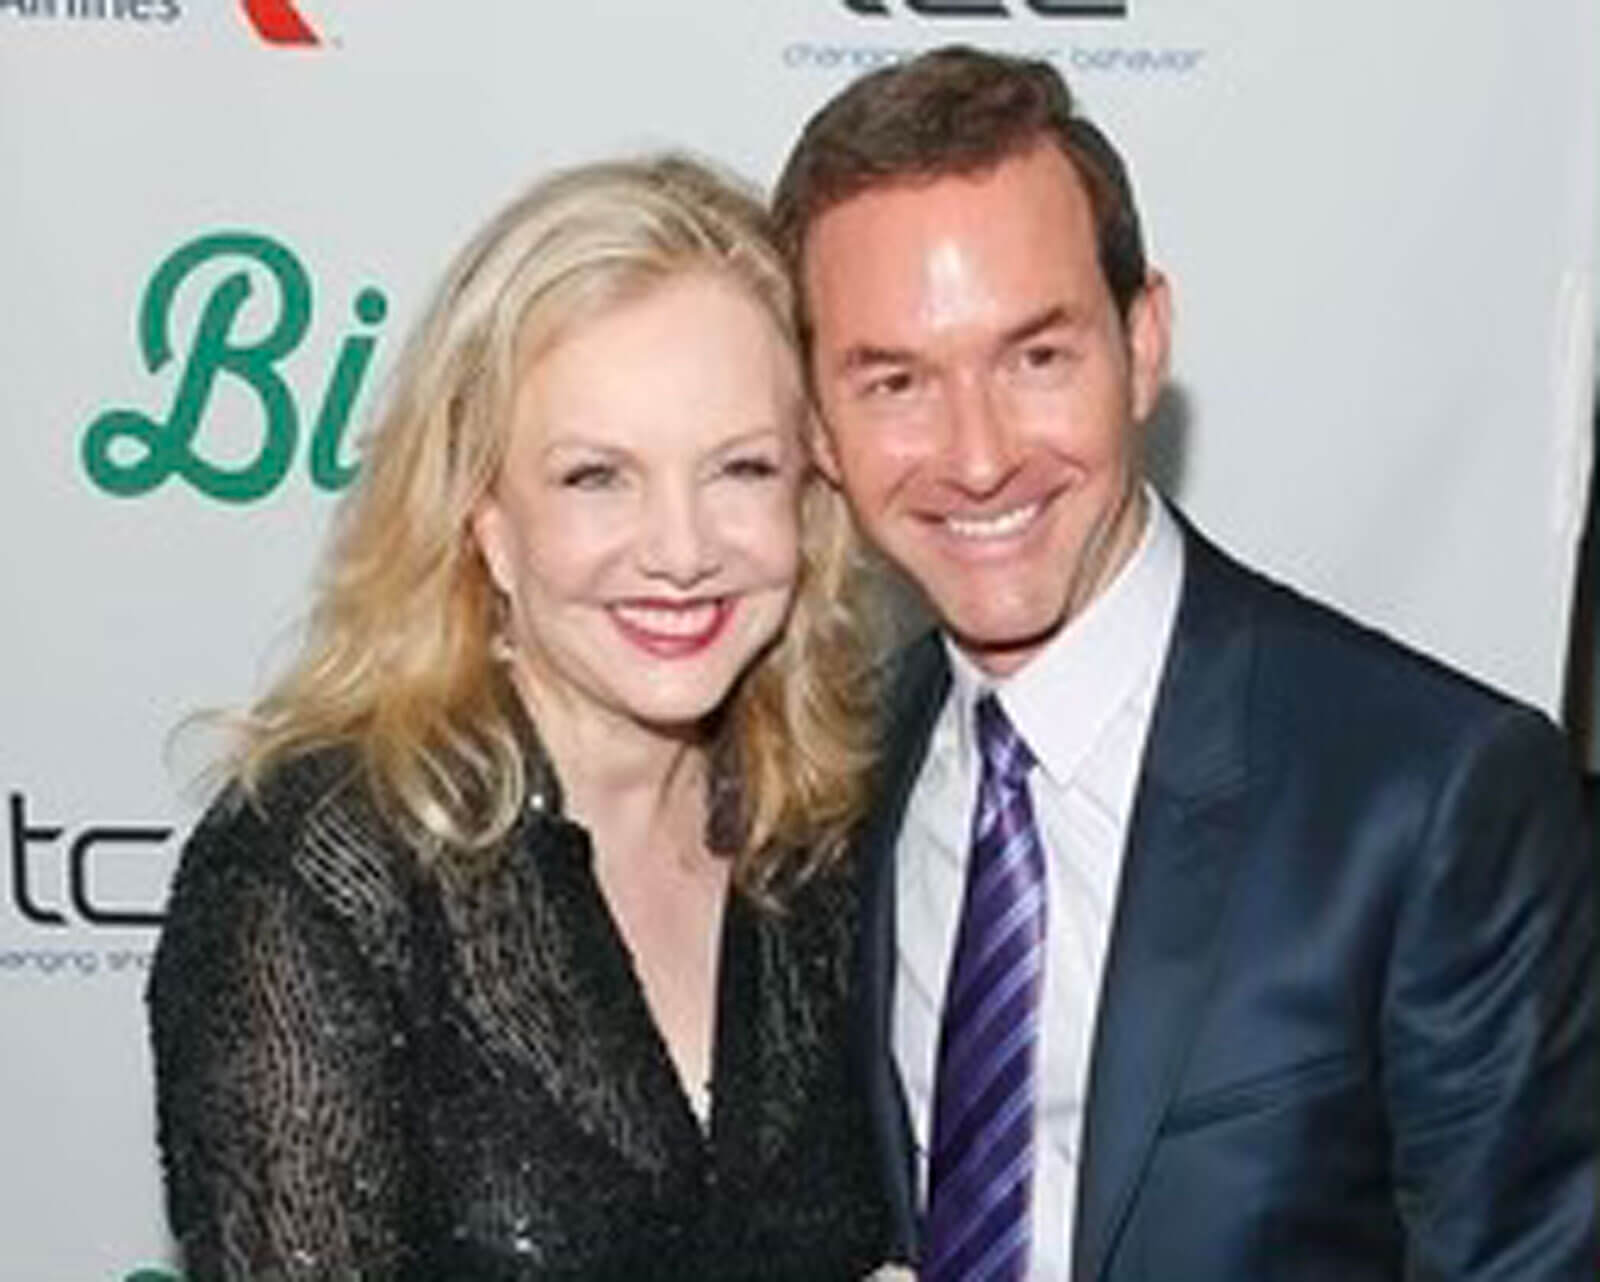 Susan Stroman and Dan Jinks (producer of Big Fish) on the red carpet on opening night.